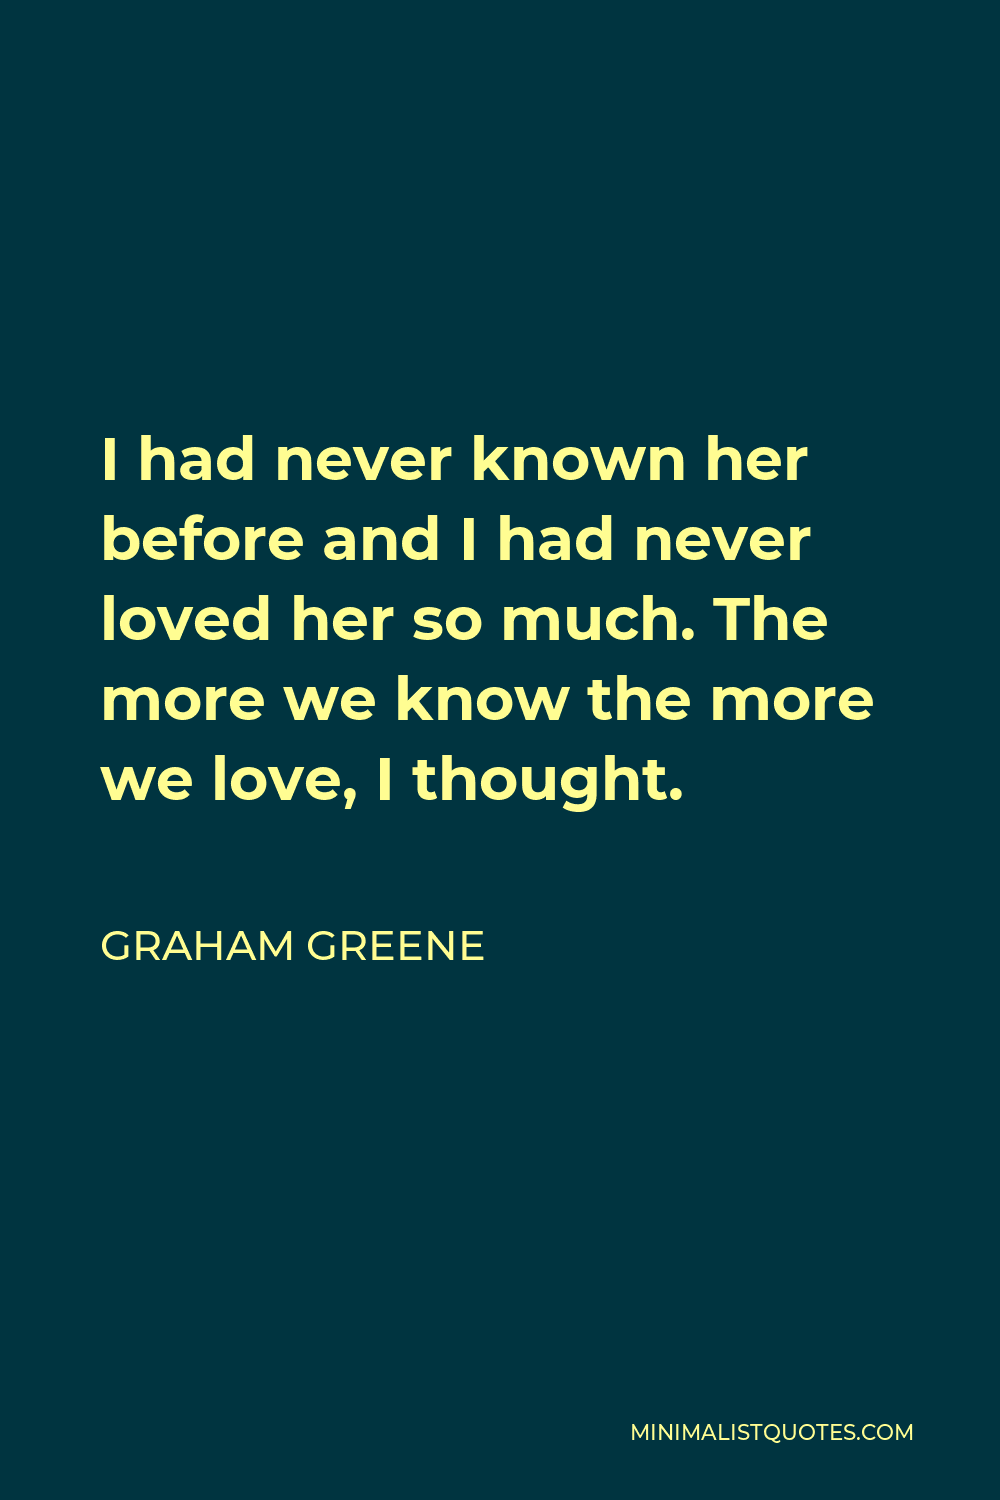 Graham Greene Quote - I had never known her before and I had never loved her so much. The more we know the more we love, I thought.